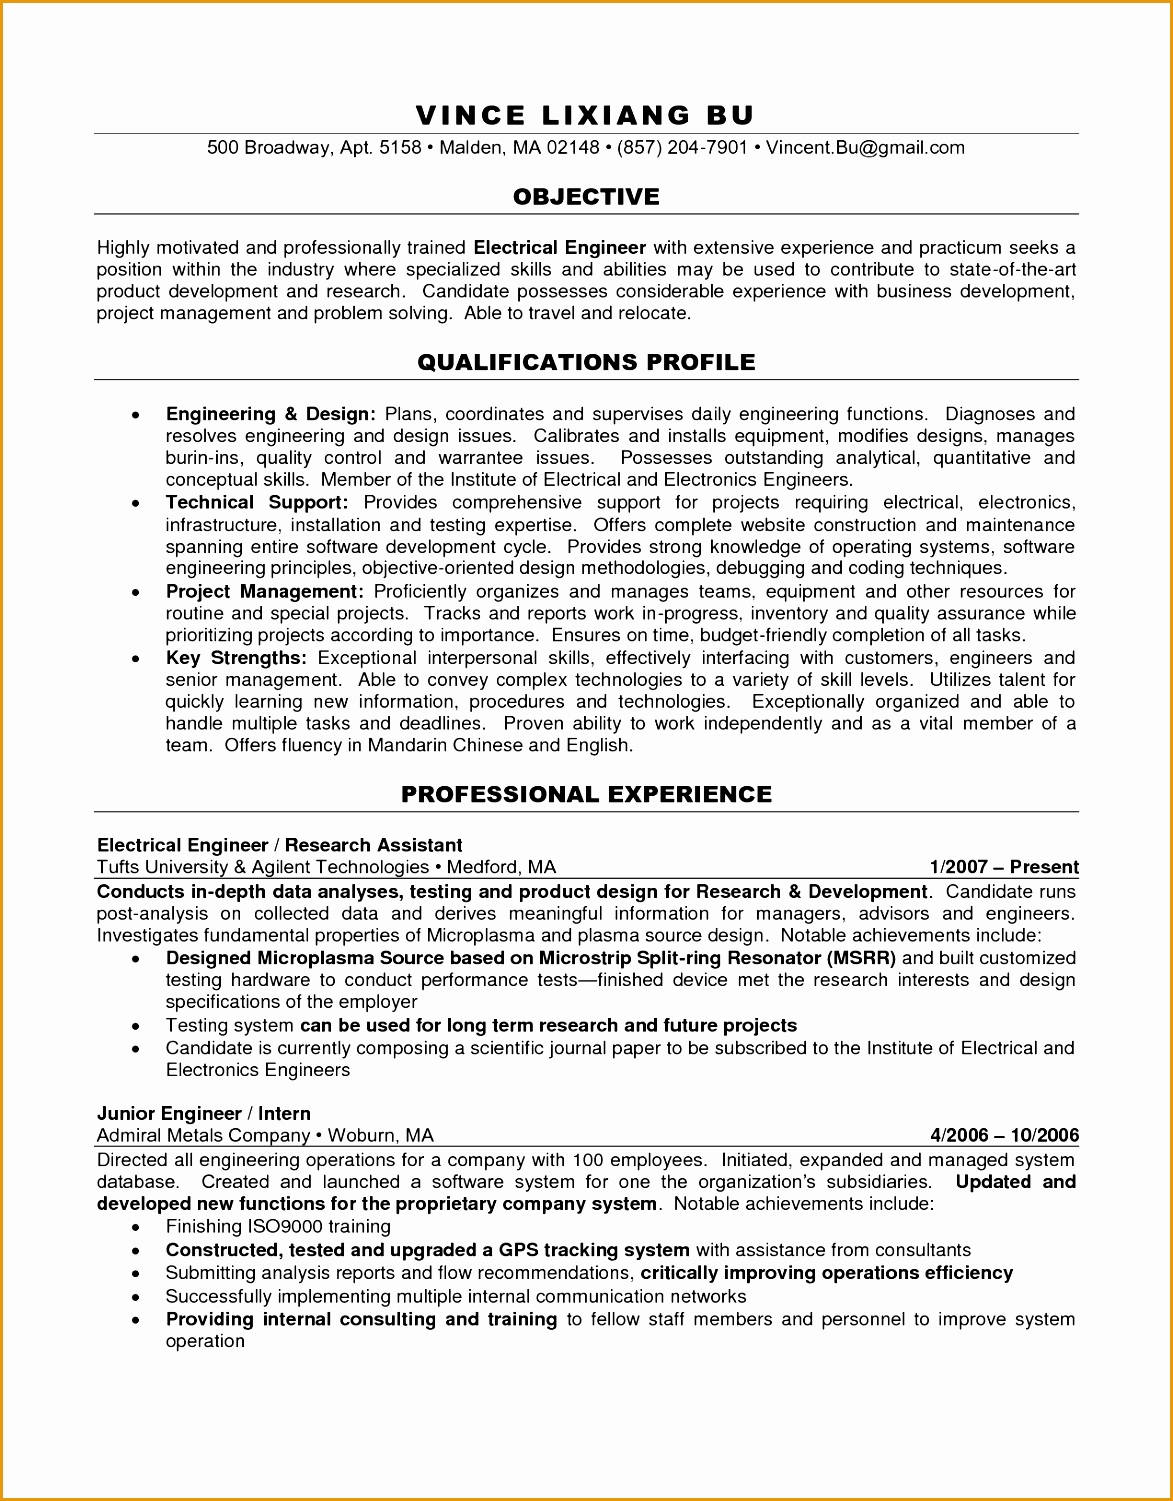 Sample Engineering Resume 7 Engineering Resume Objectives Sample Free Samples